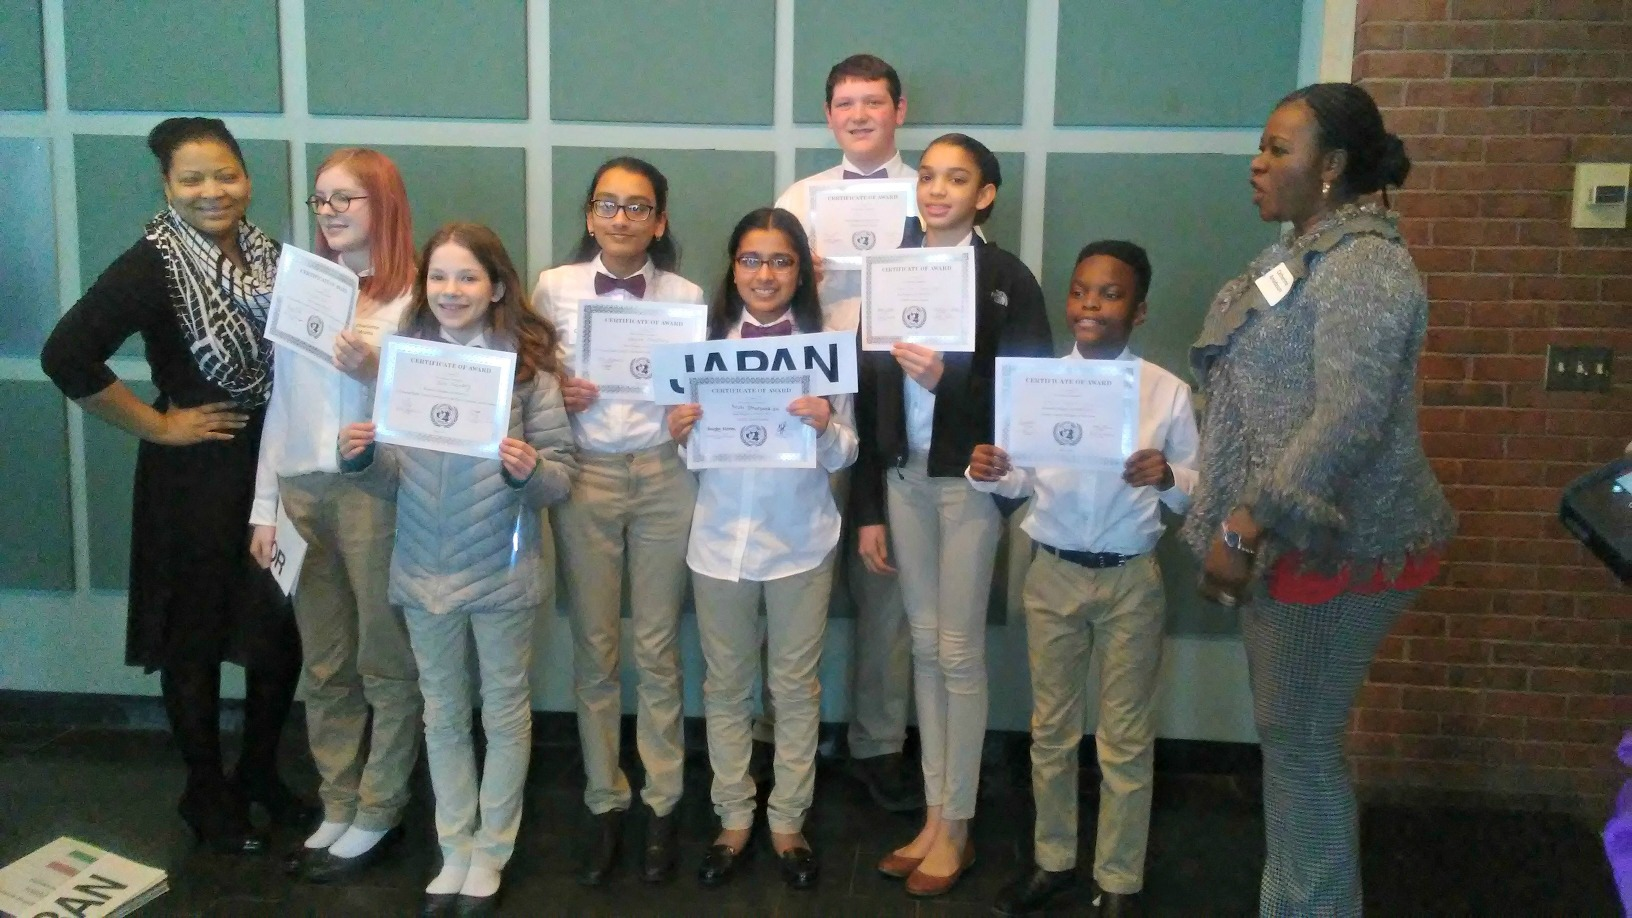 Sage Students Win Most Awards at Model United Nations Conference